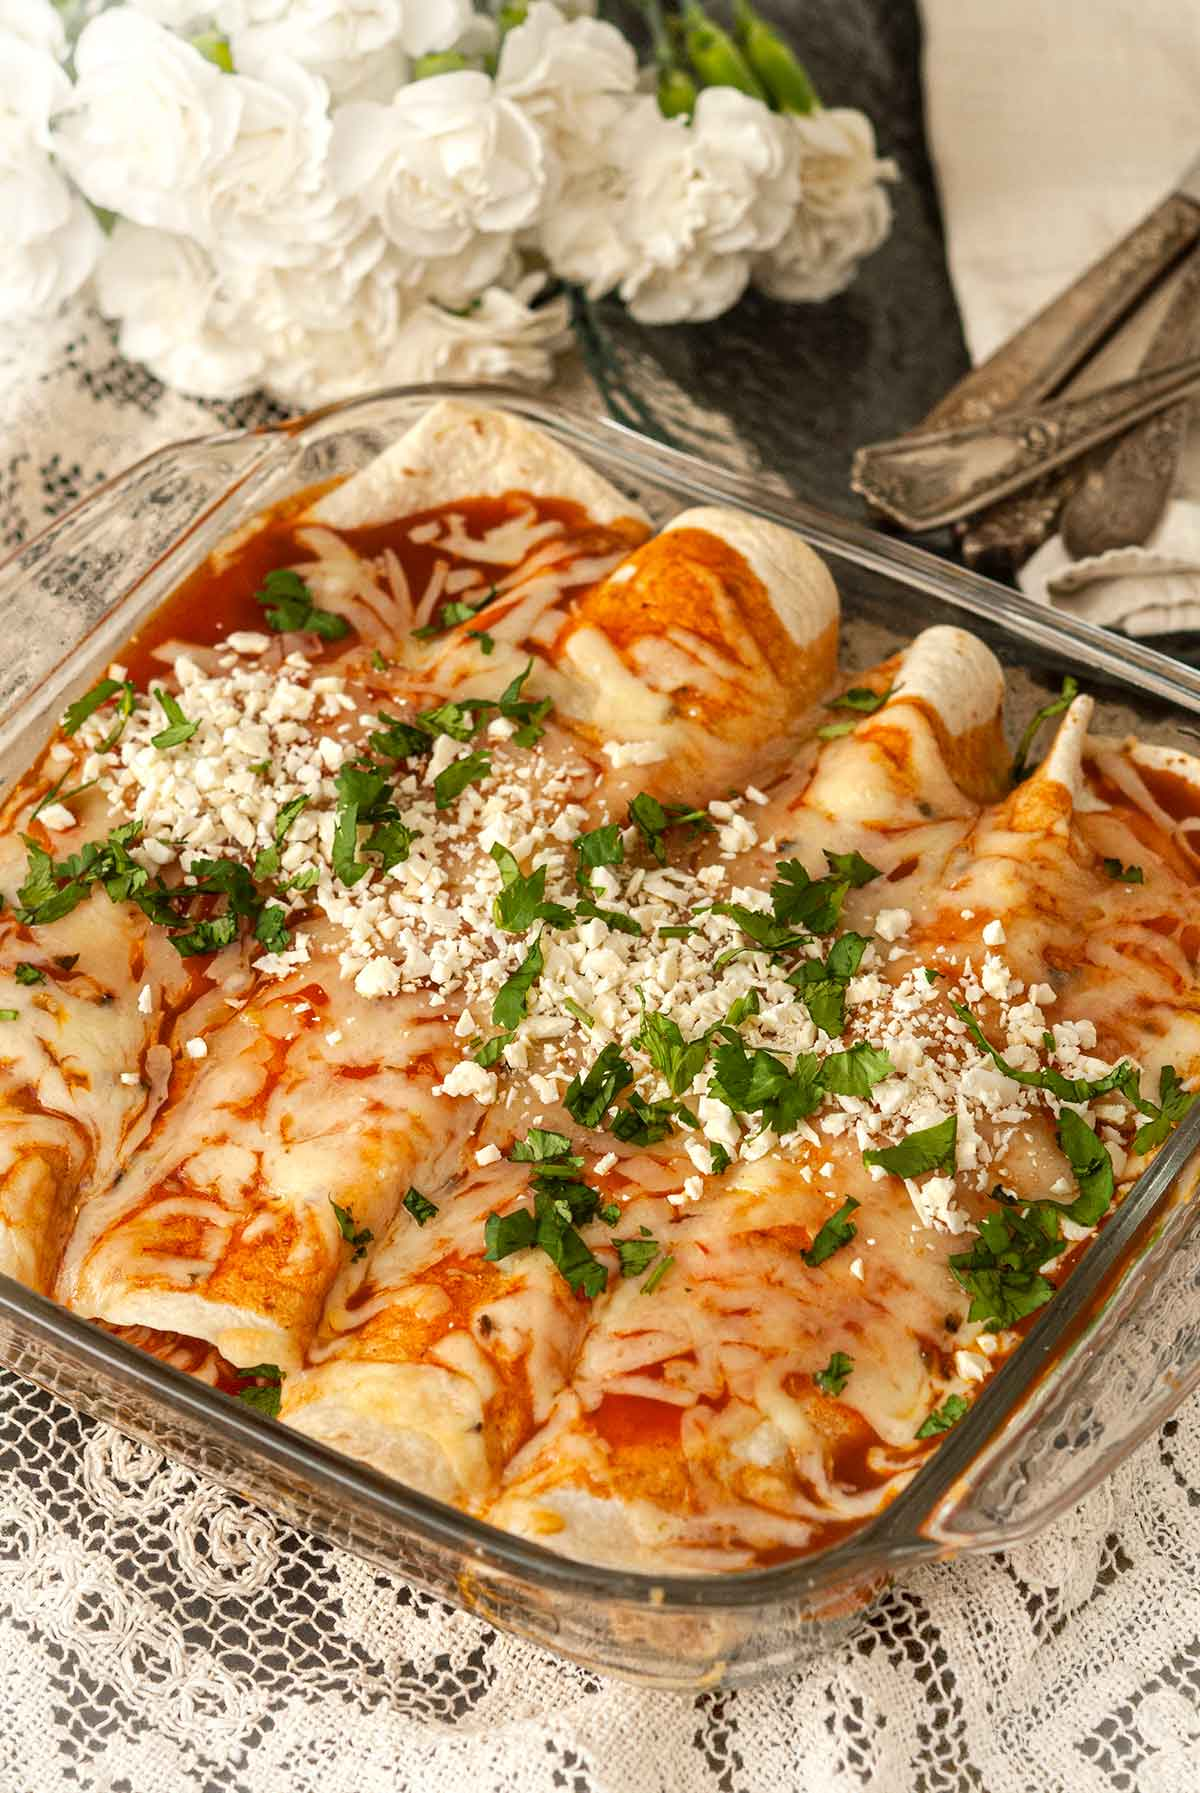 A Pyrex dish with 4 chicken enchiladas on a lace tablecloth with flowers and silverware in the background.